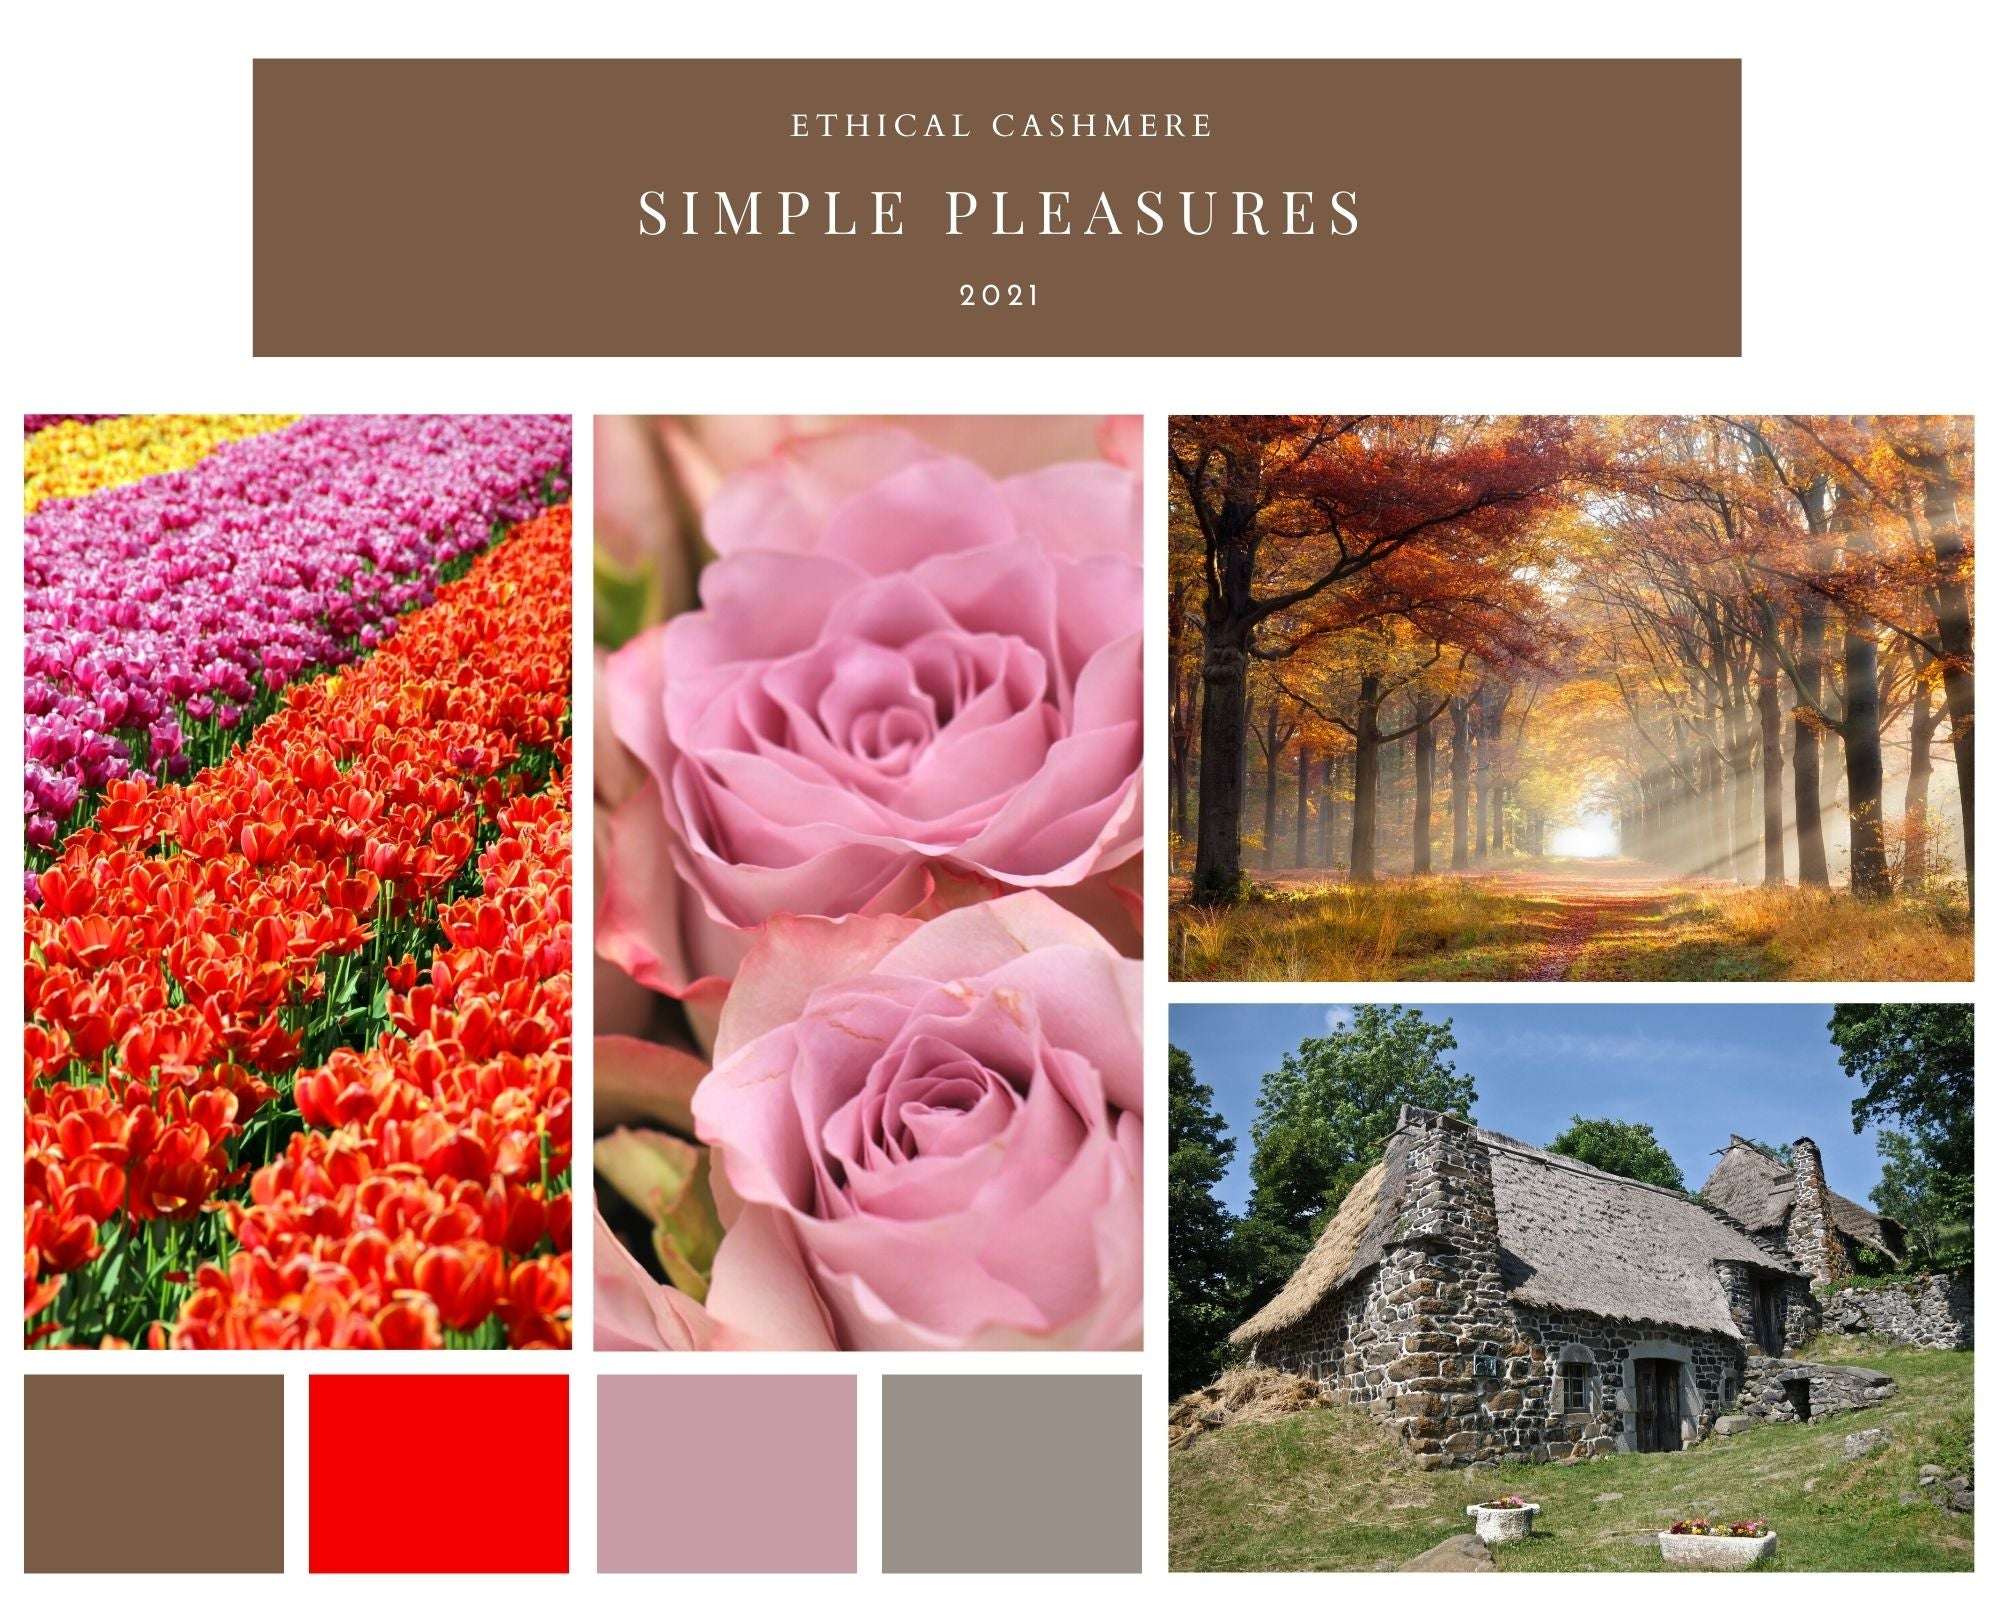 Collage of images depicting purple and vermillion rows of flowers, close-up of lilac antique roses, autumn forest, and slate grey stone cottage, providing colour inspiration for Ethical Cashmere's 2021 Simple Pleasures fall season.